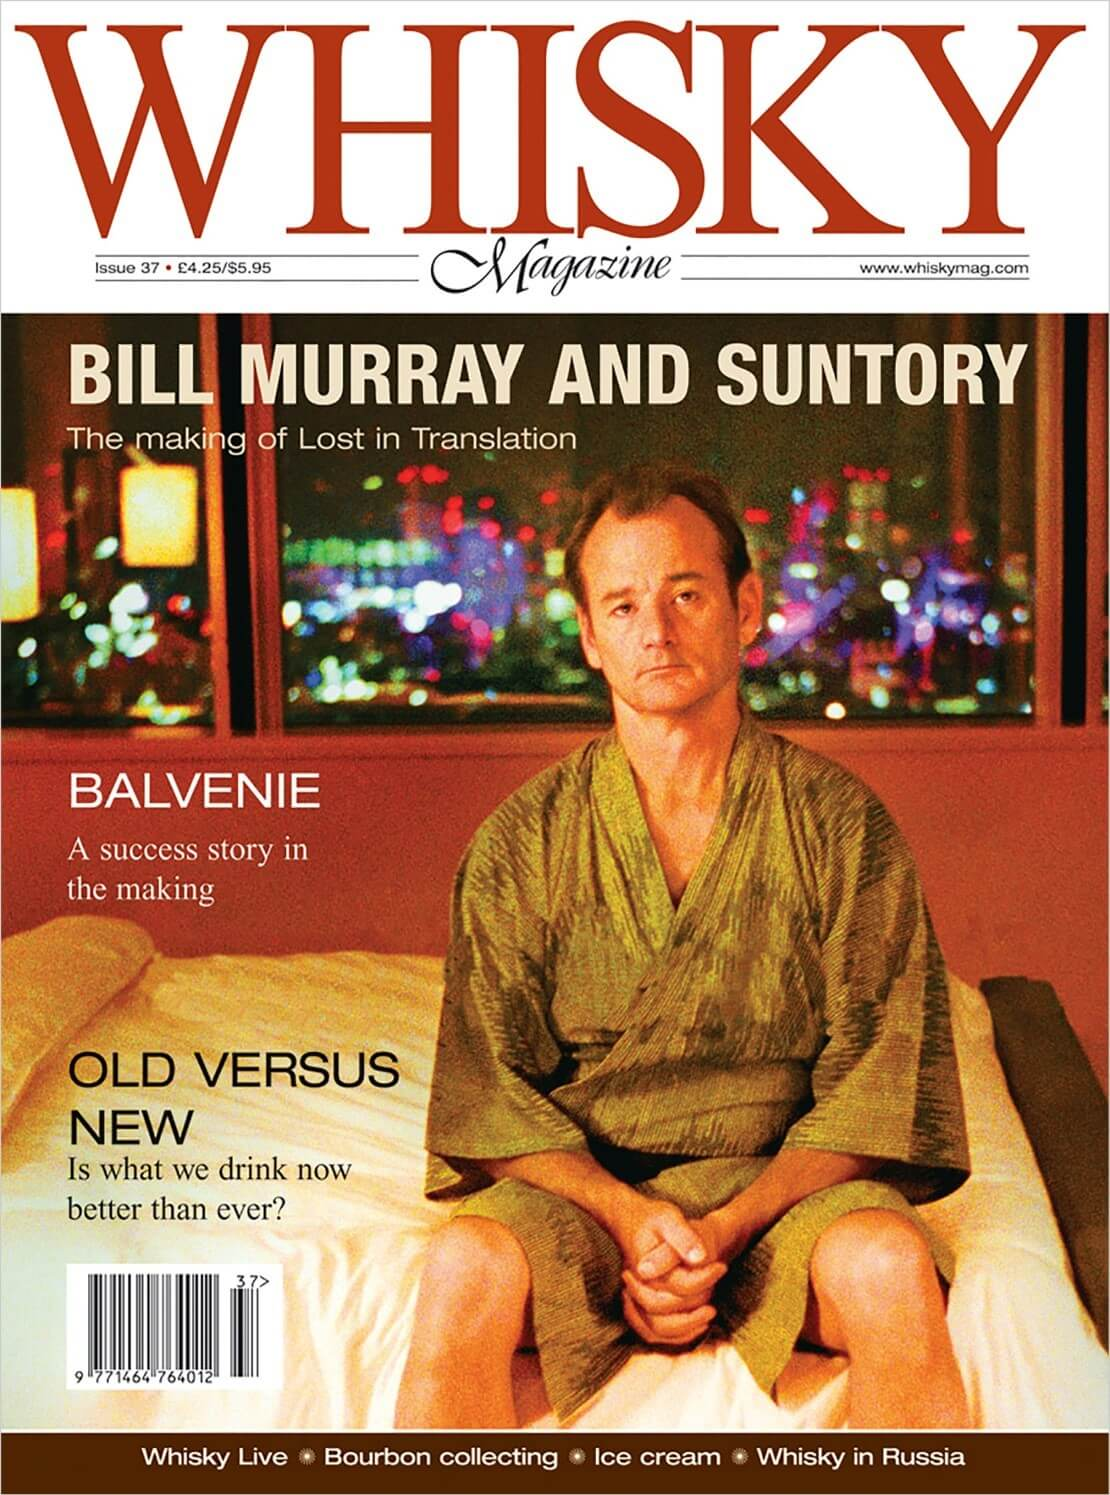 Bill Murray Whisky Live Bourbon Collecting Ice Cream Whisky in Russia